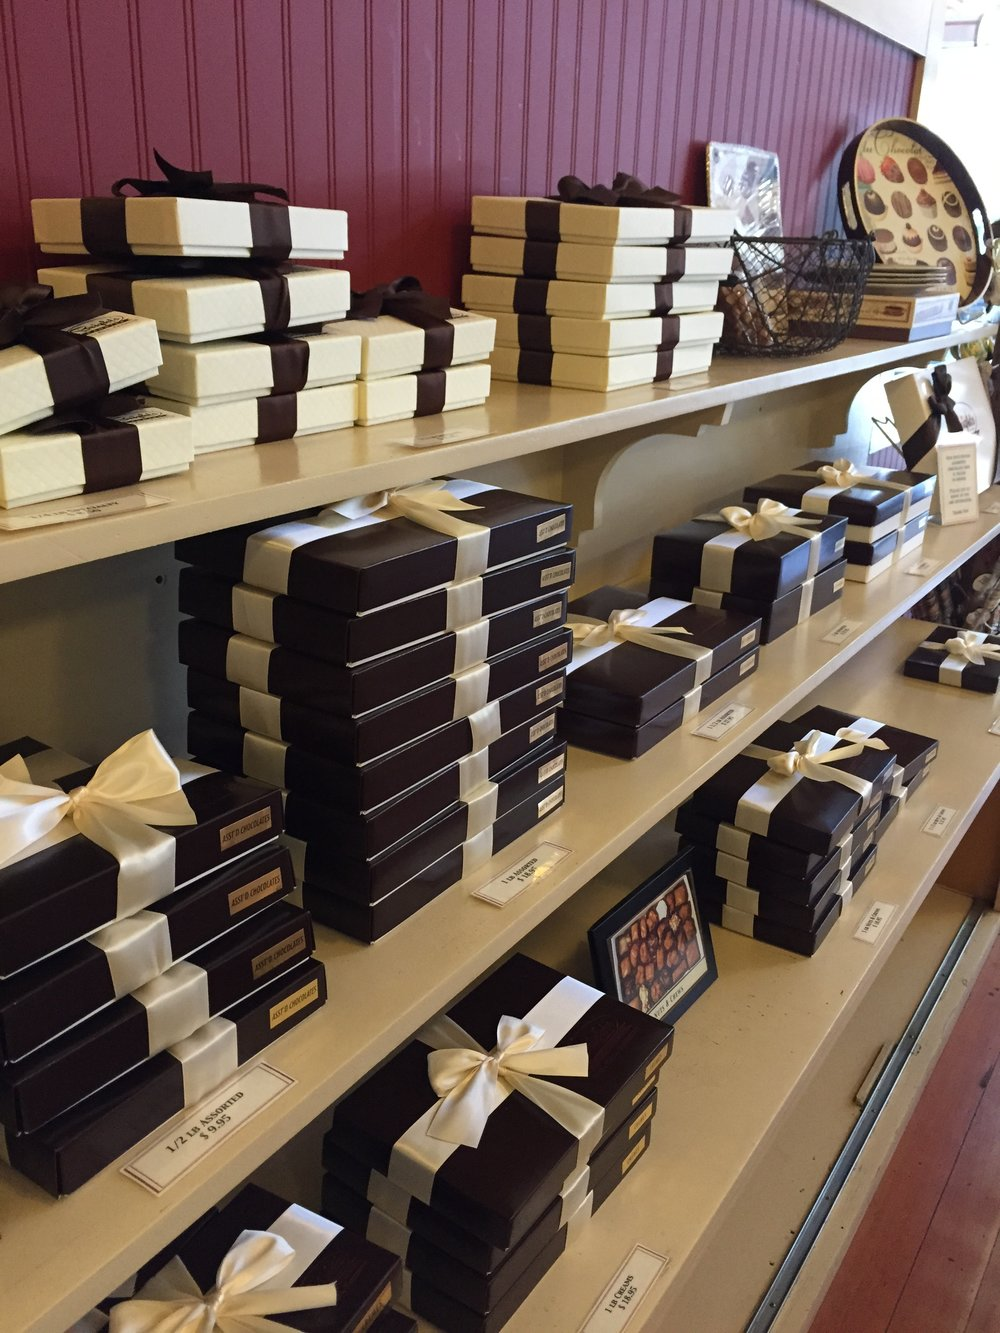 Our boxed chocolates on the shelf and ready to go!